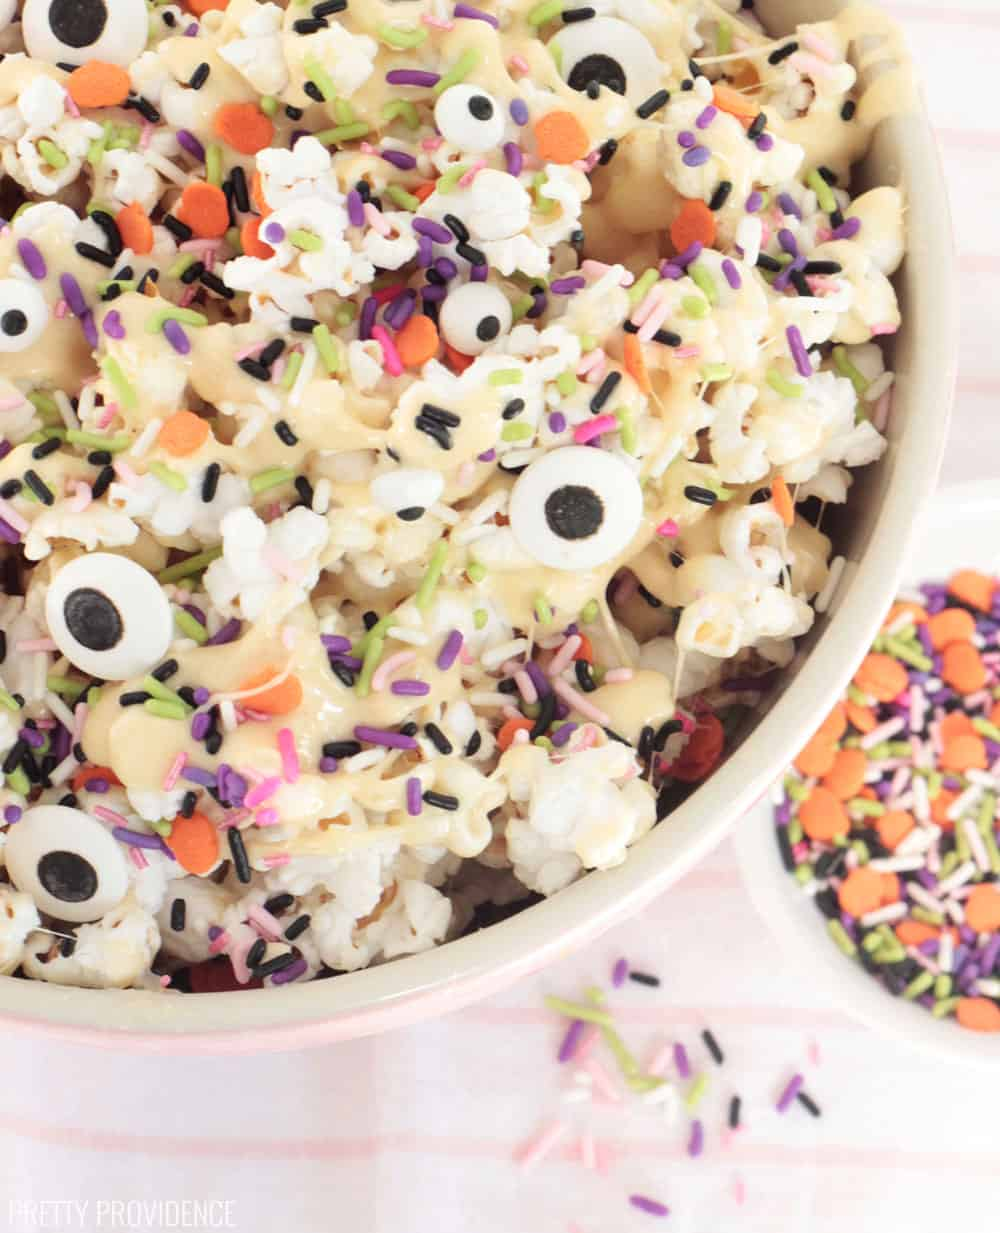 Spooky Halloween Popcorn with melted marshmallow, Halloween sprinkles and candy eyeballs on it.